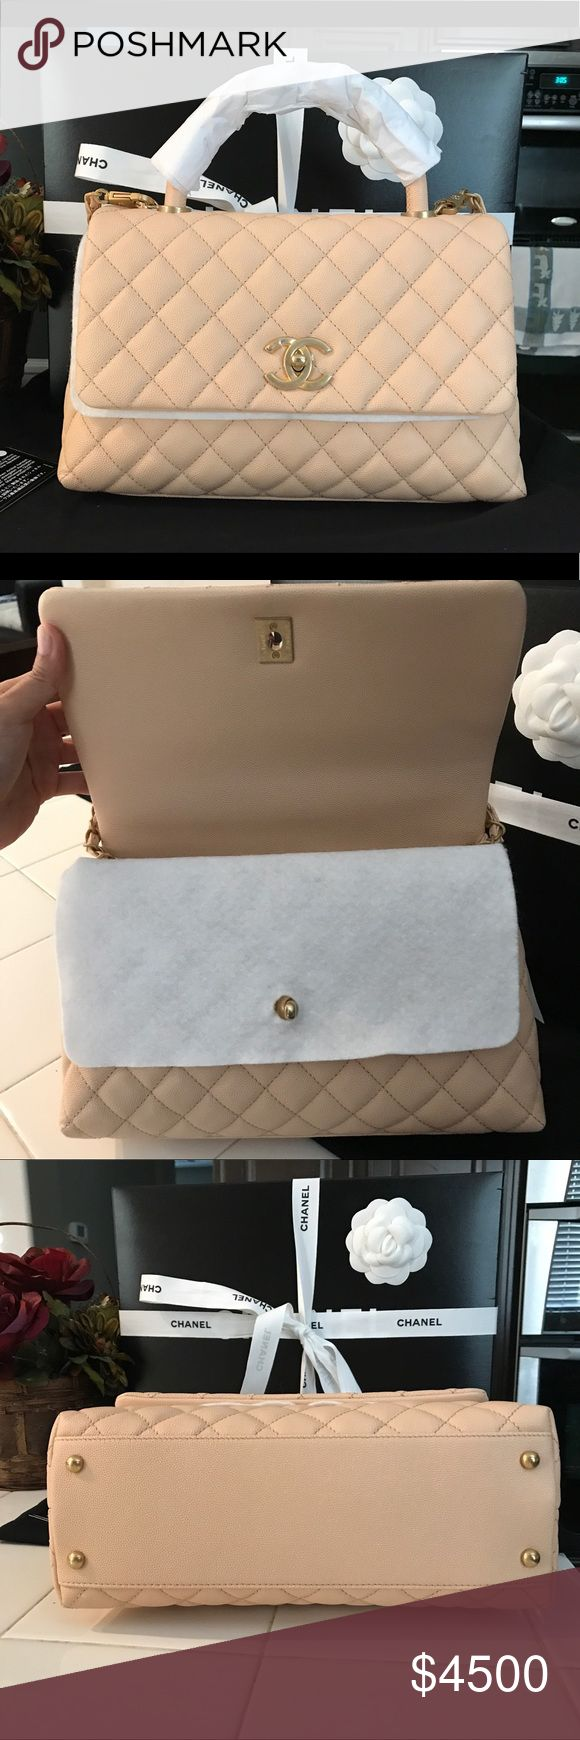 Bnwt chanel coco handle small beige gold hw Brand new complete set. CHANEL Bags